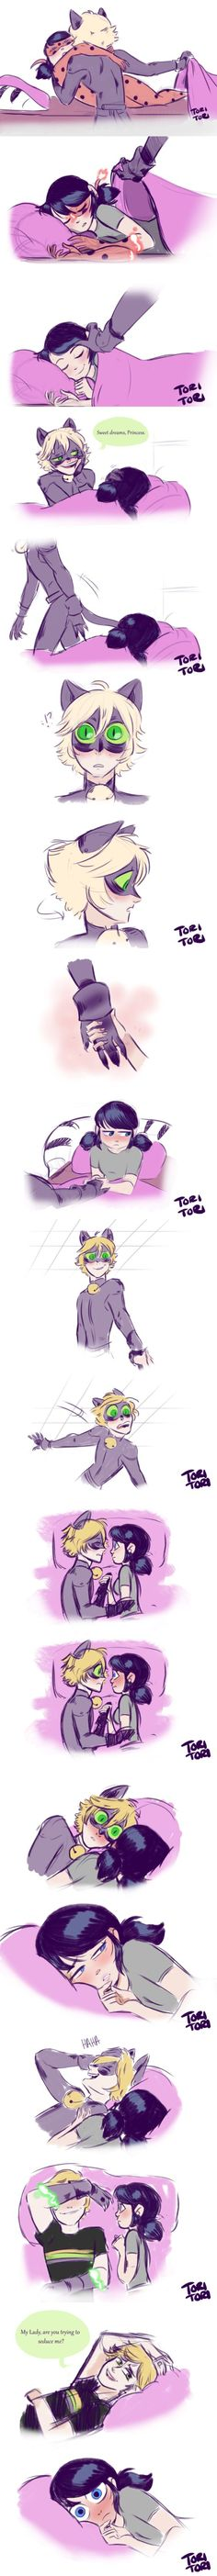 Adrien and Marinette (Miraculous: Tales of Ladybug & Cat Noir)